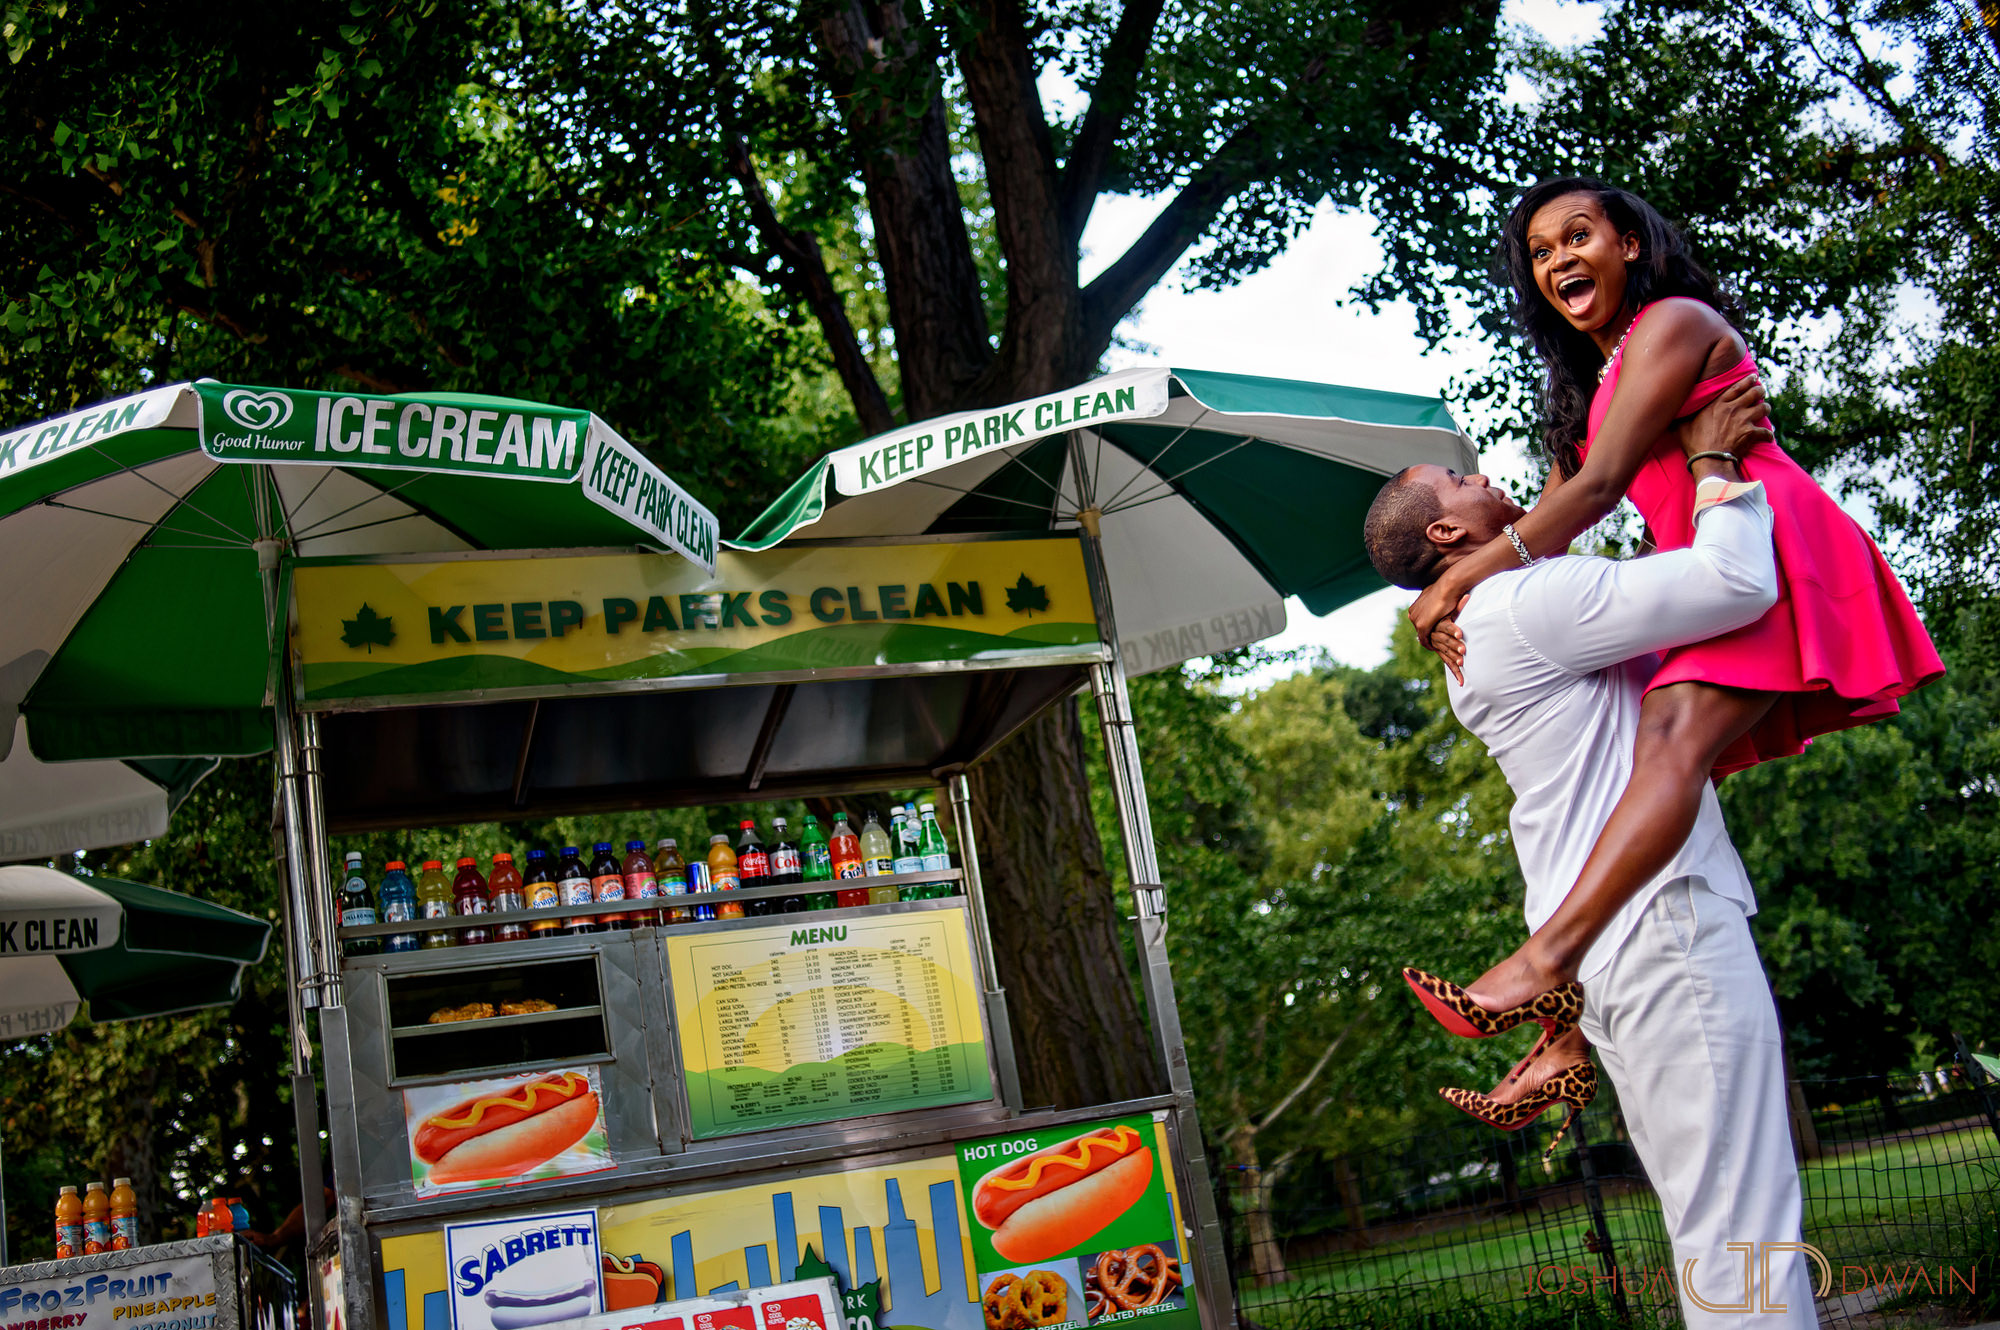 sandra-otwan-005-central-park-lincoln-center-new-yorkpre-wedding-photos-joshua-dwain